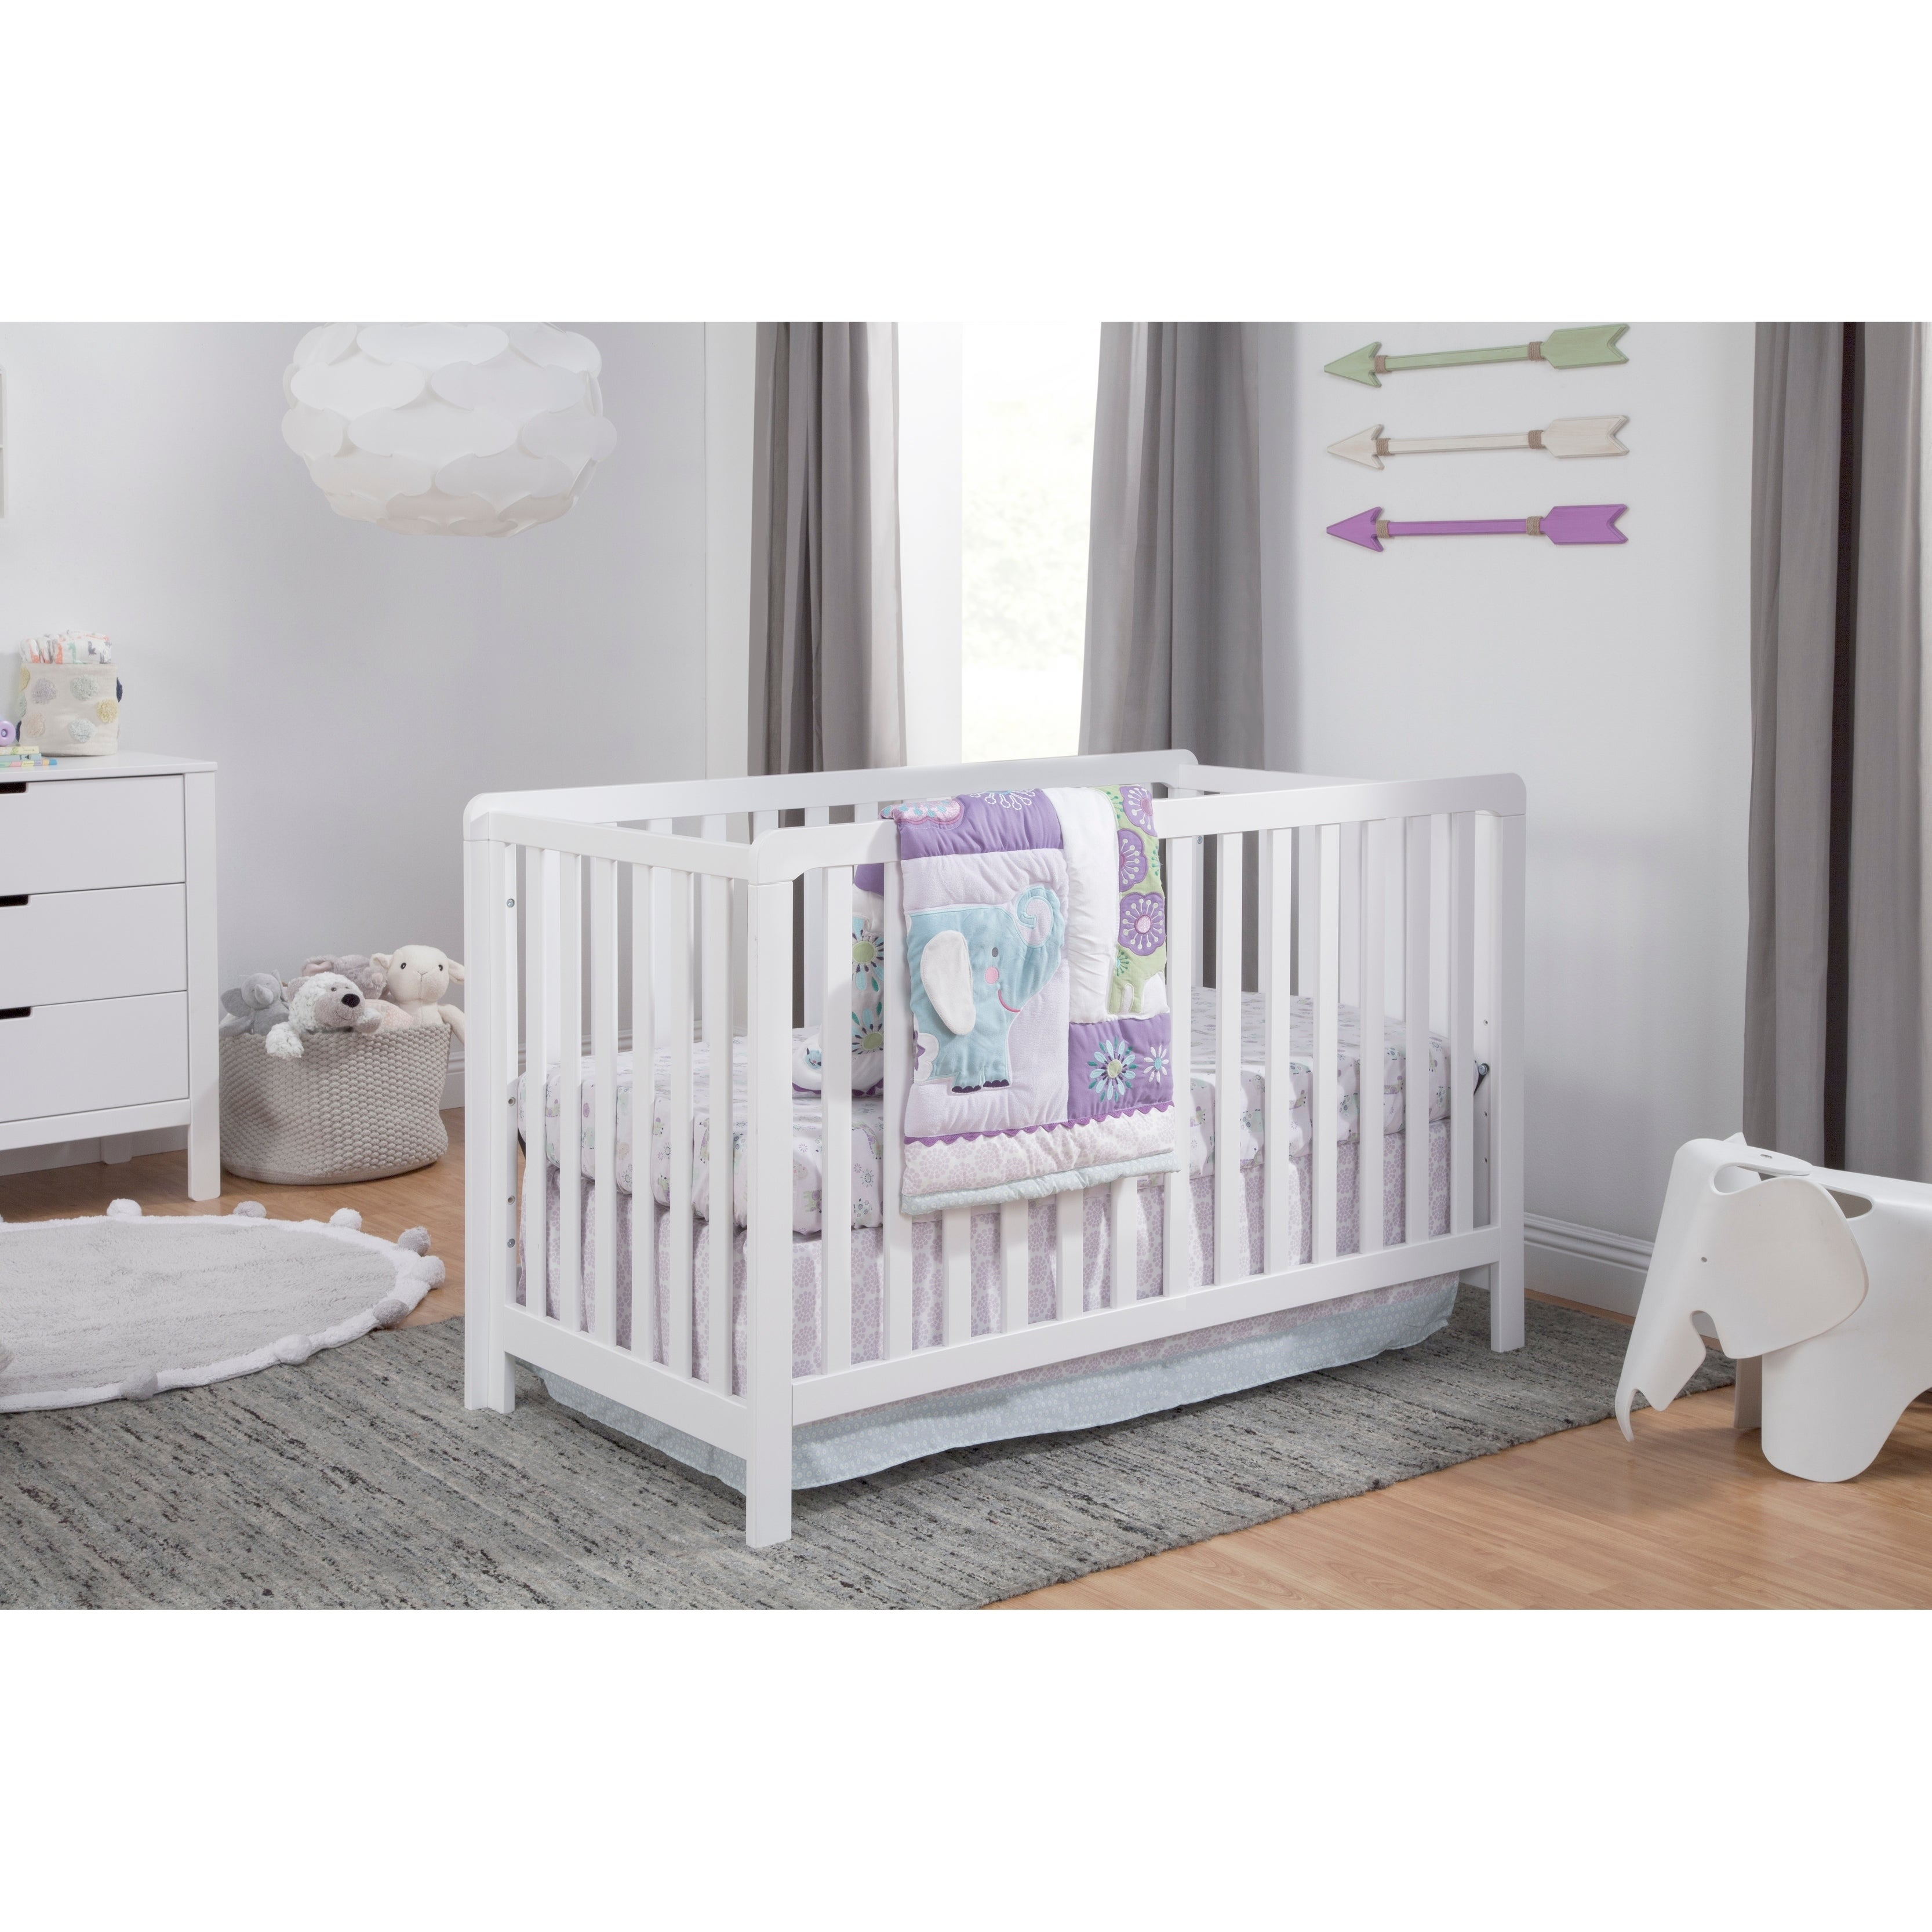 Carter S By Davinci Colby 4 In 1 Low Profile Convertible Crib Overstock 27746072 Emerald